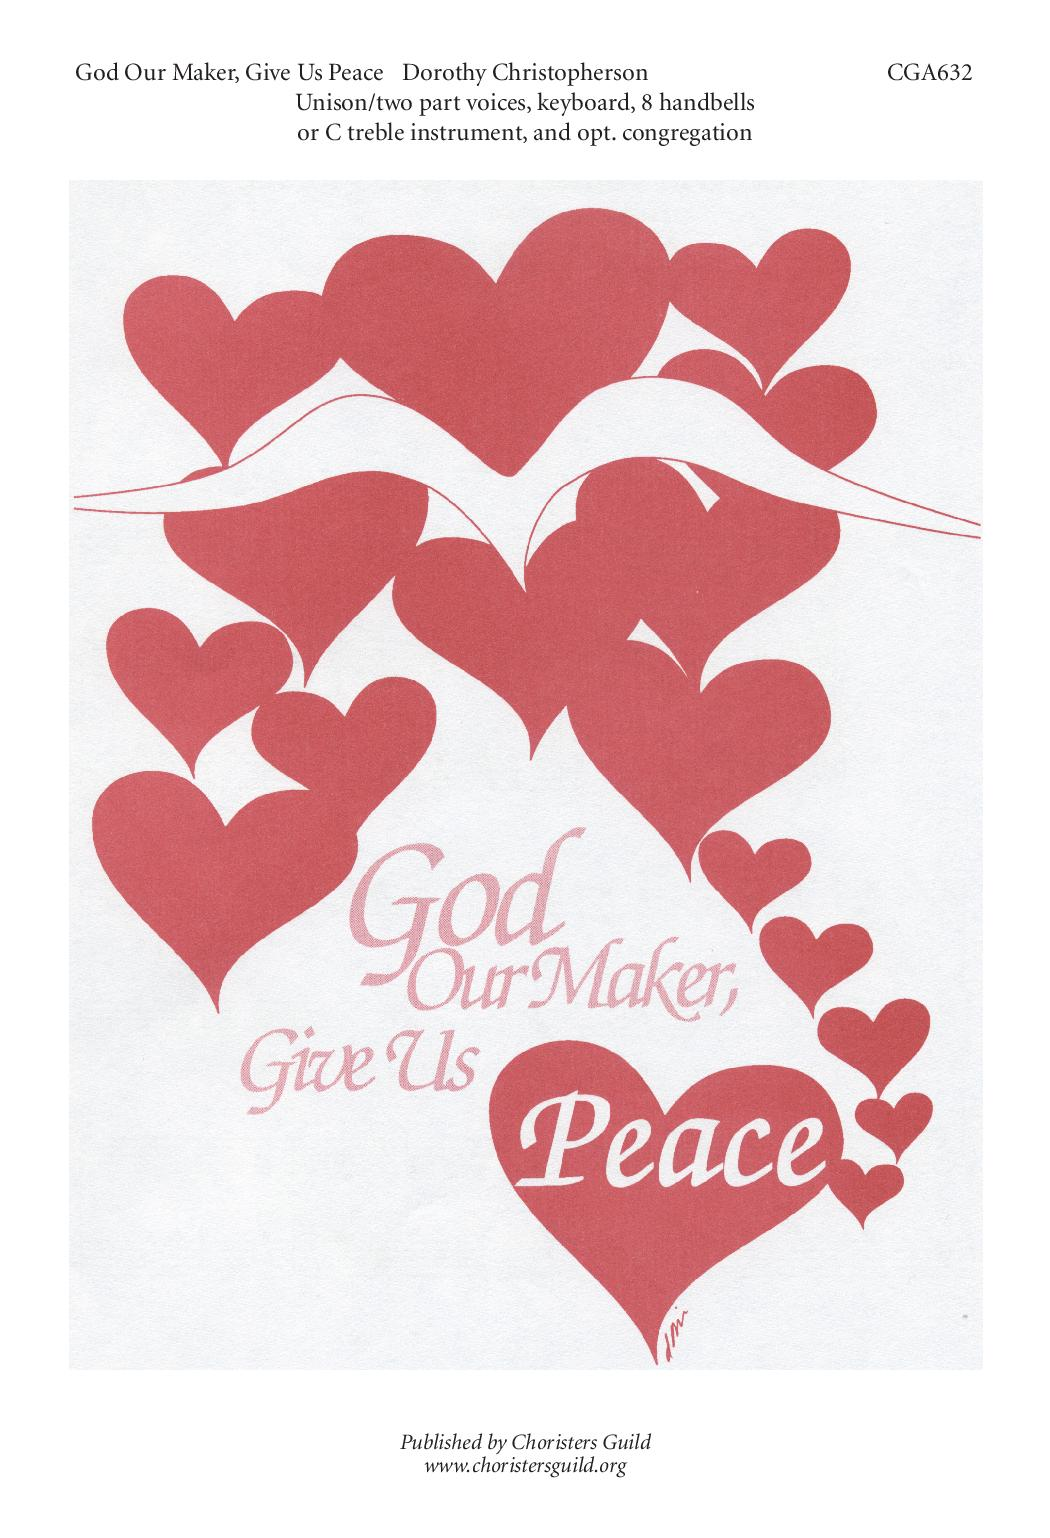 God Our Maker, Give Us Peace